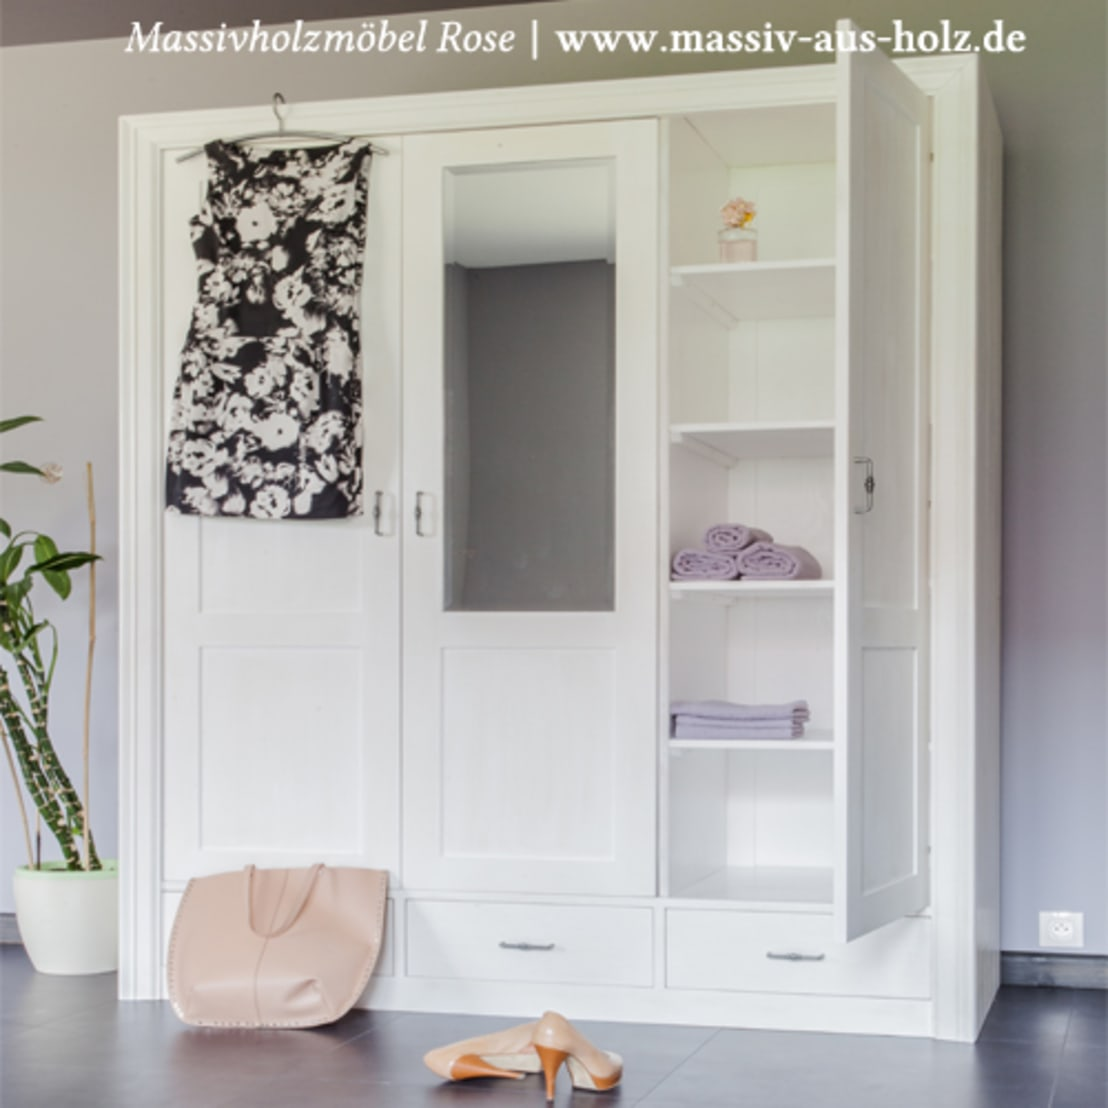 moderne massivholzm bel von massiv aus holz homify. Black Bedroom Furniture Sets. Home Design Ideas